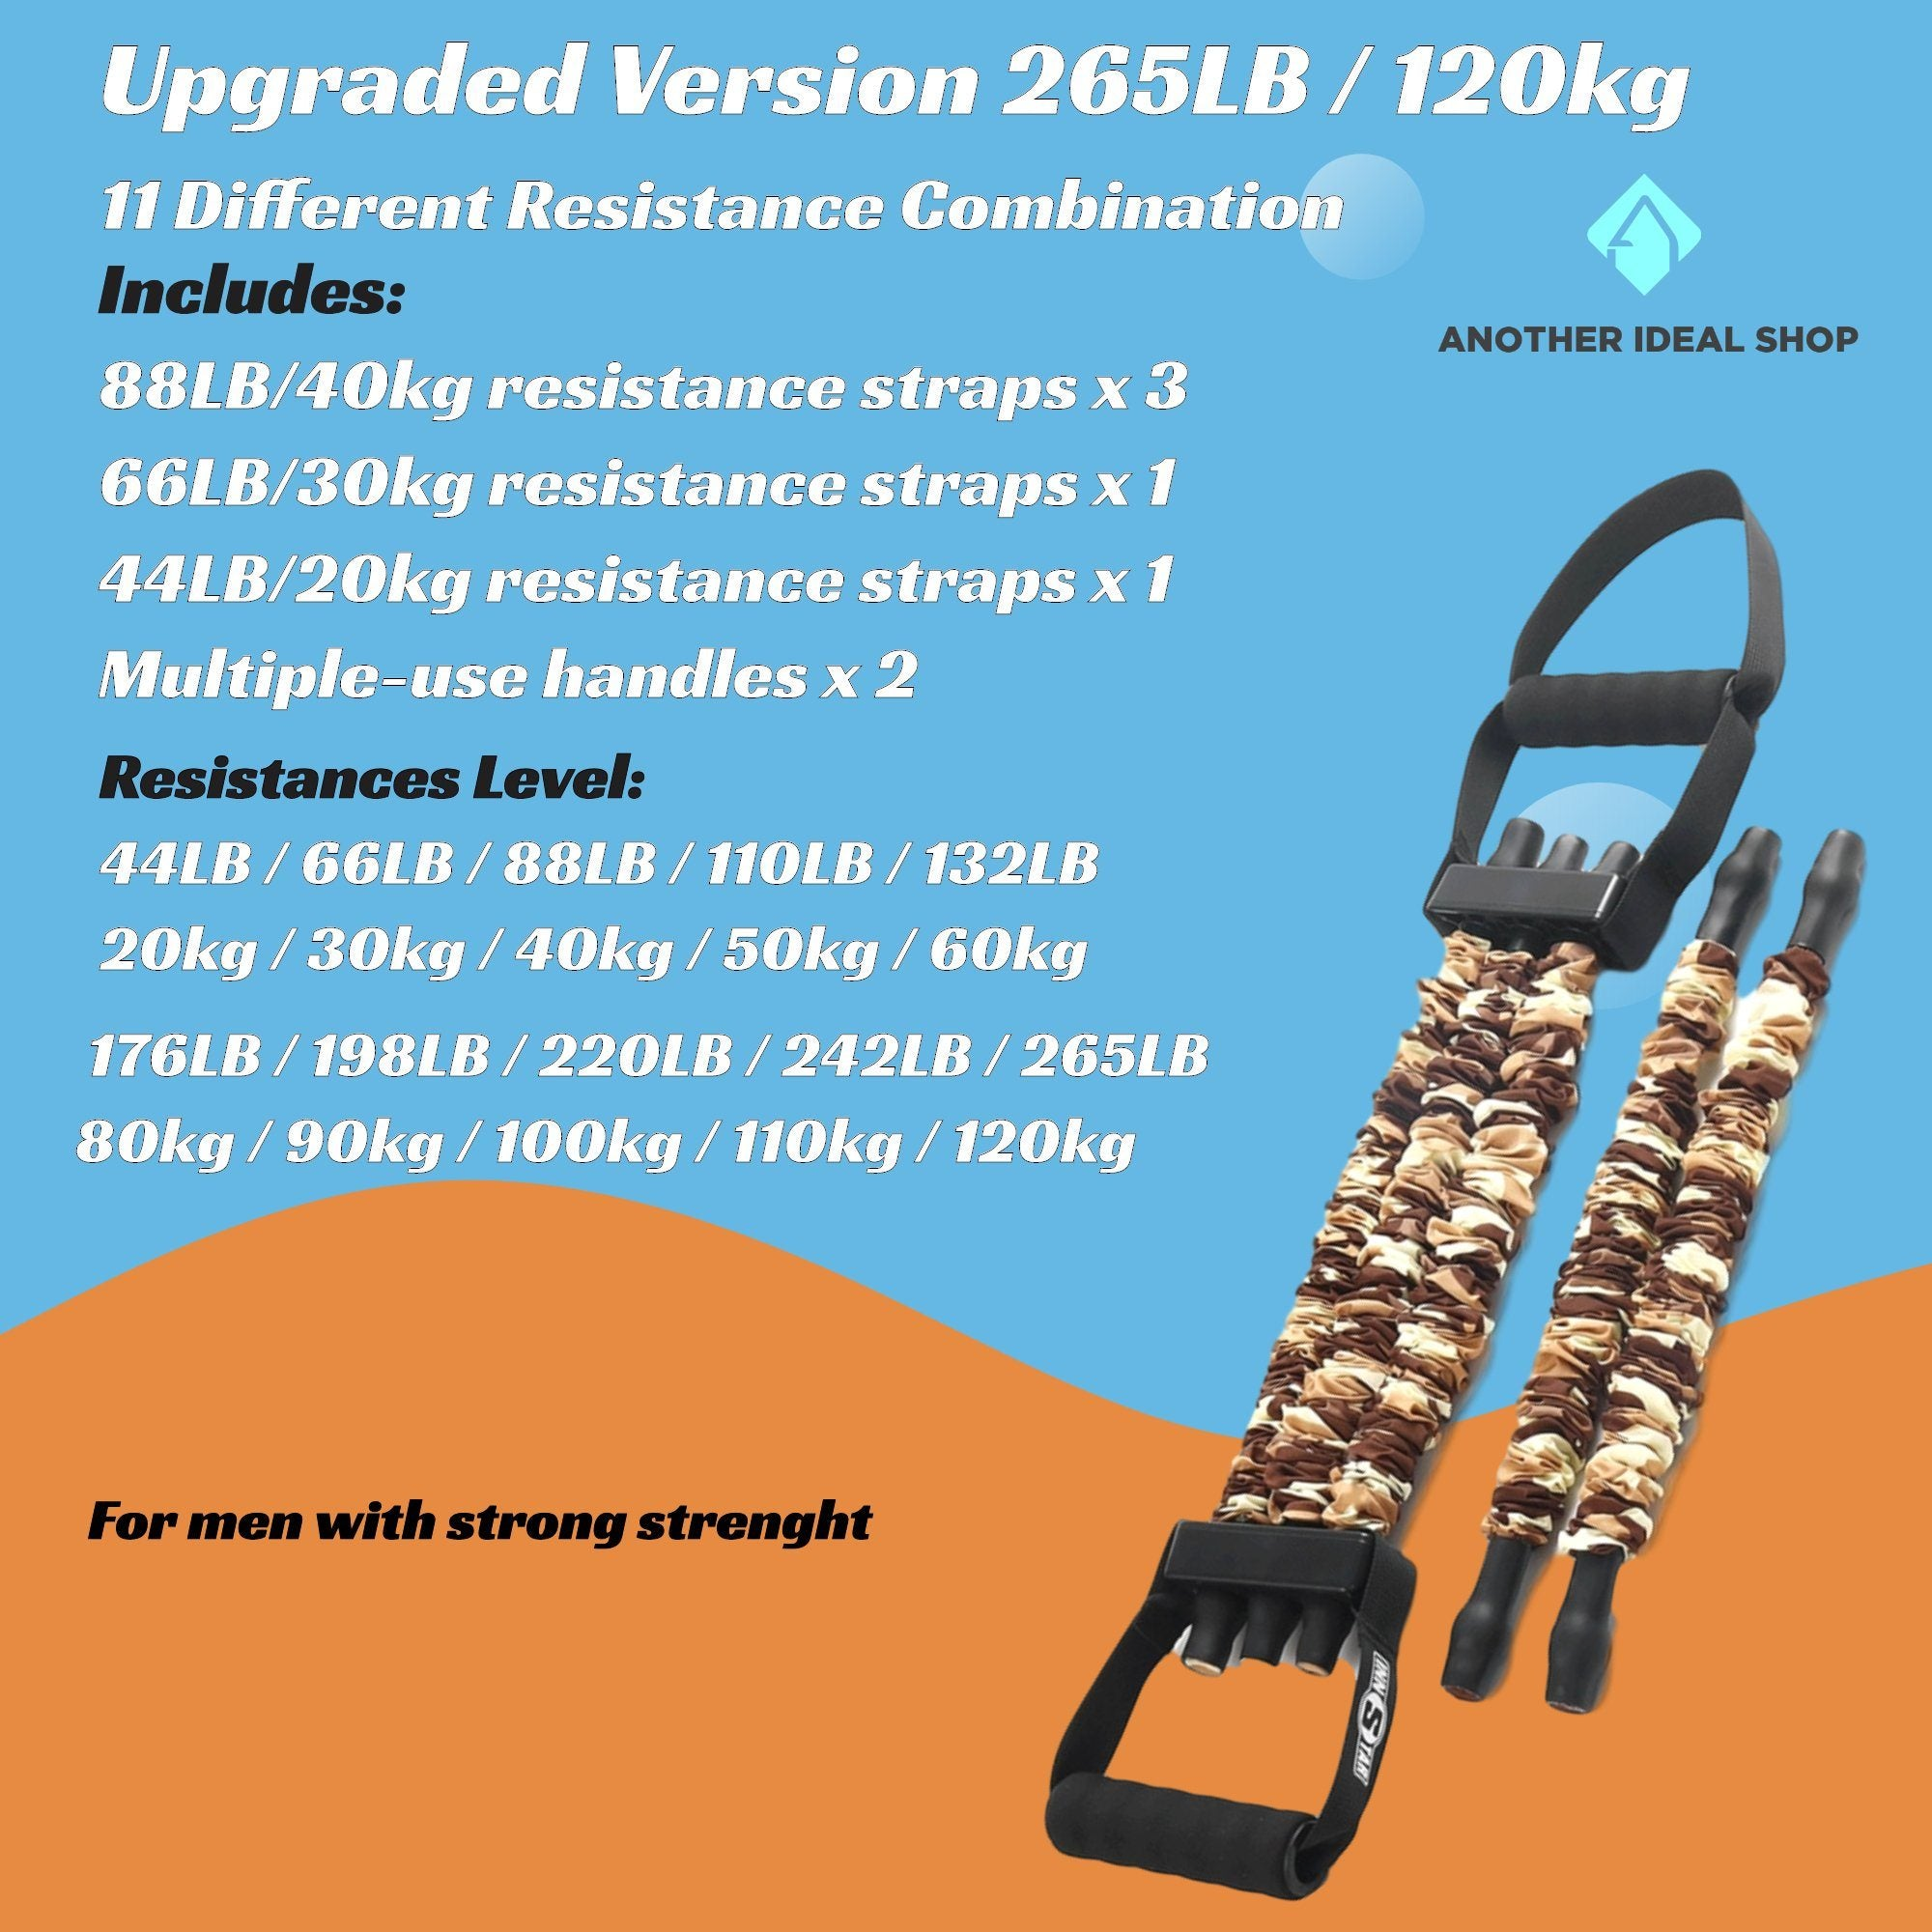 Adjustable Chest Training Expander Resistance Bands INNSTAR Official Store 120Kg / 265LB Upgraded